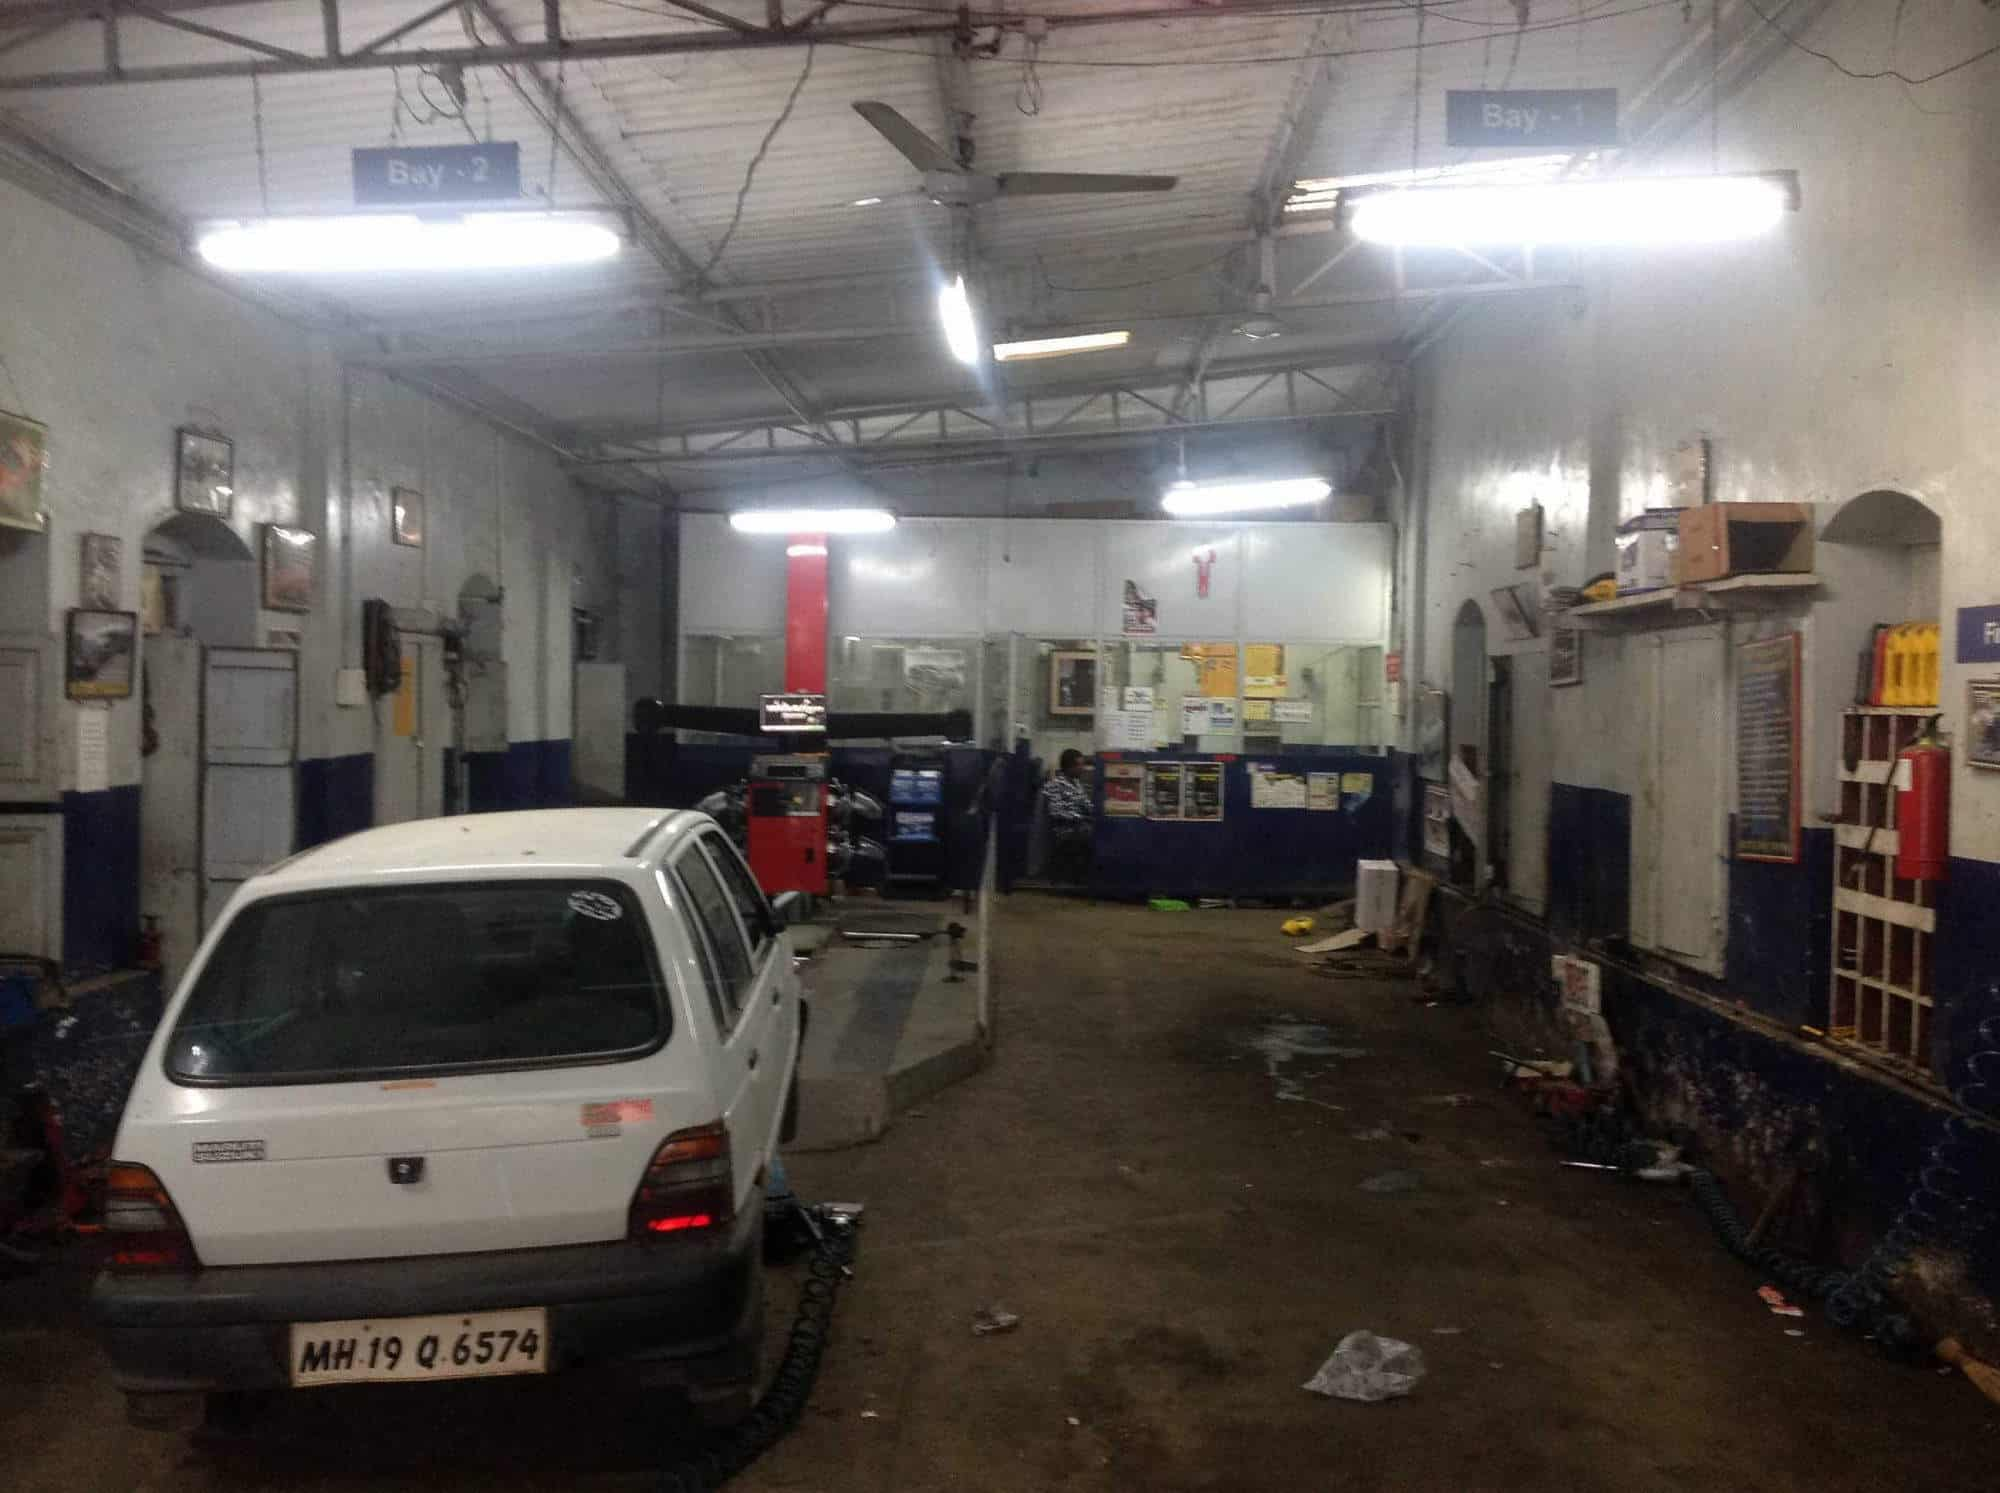 Diy car repair garage london clublifeglobal diy car repair garage london clublilobal com solutioingenieria Gallery